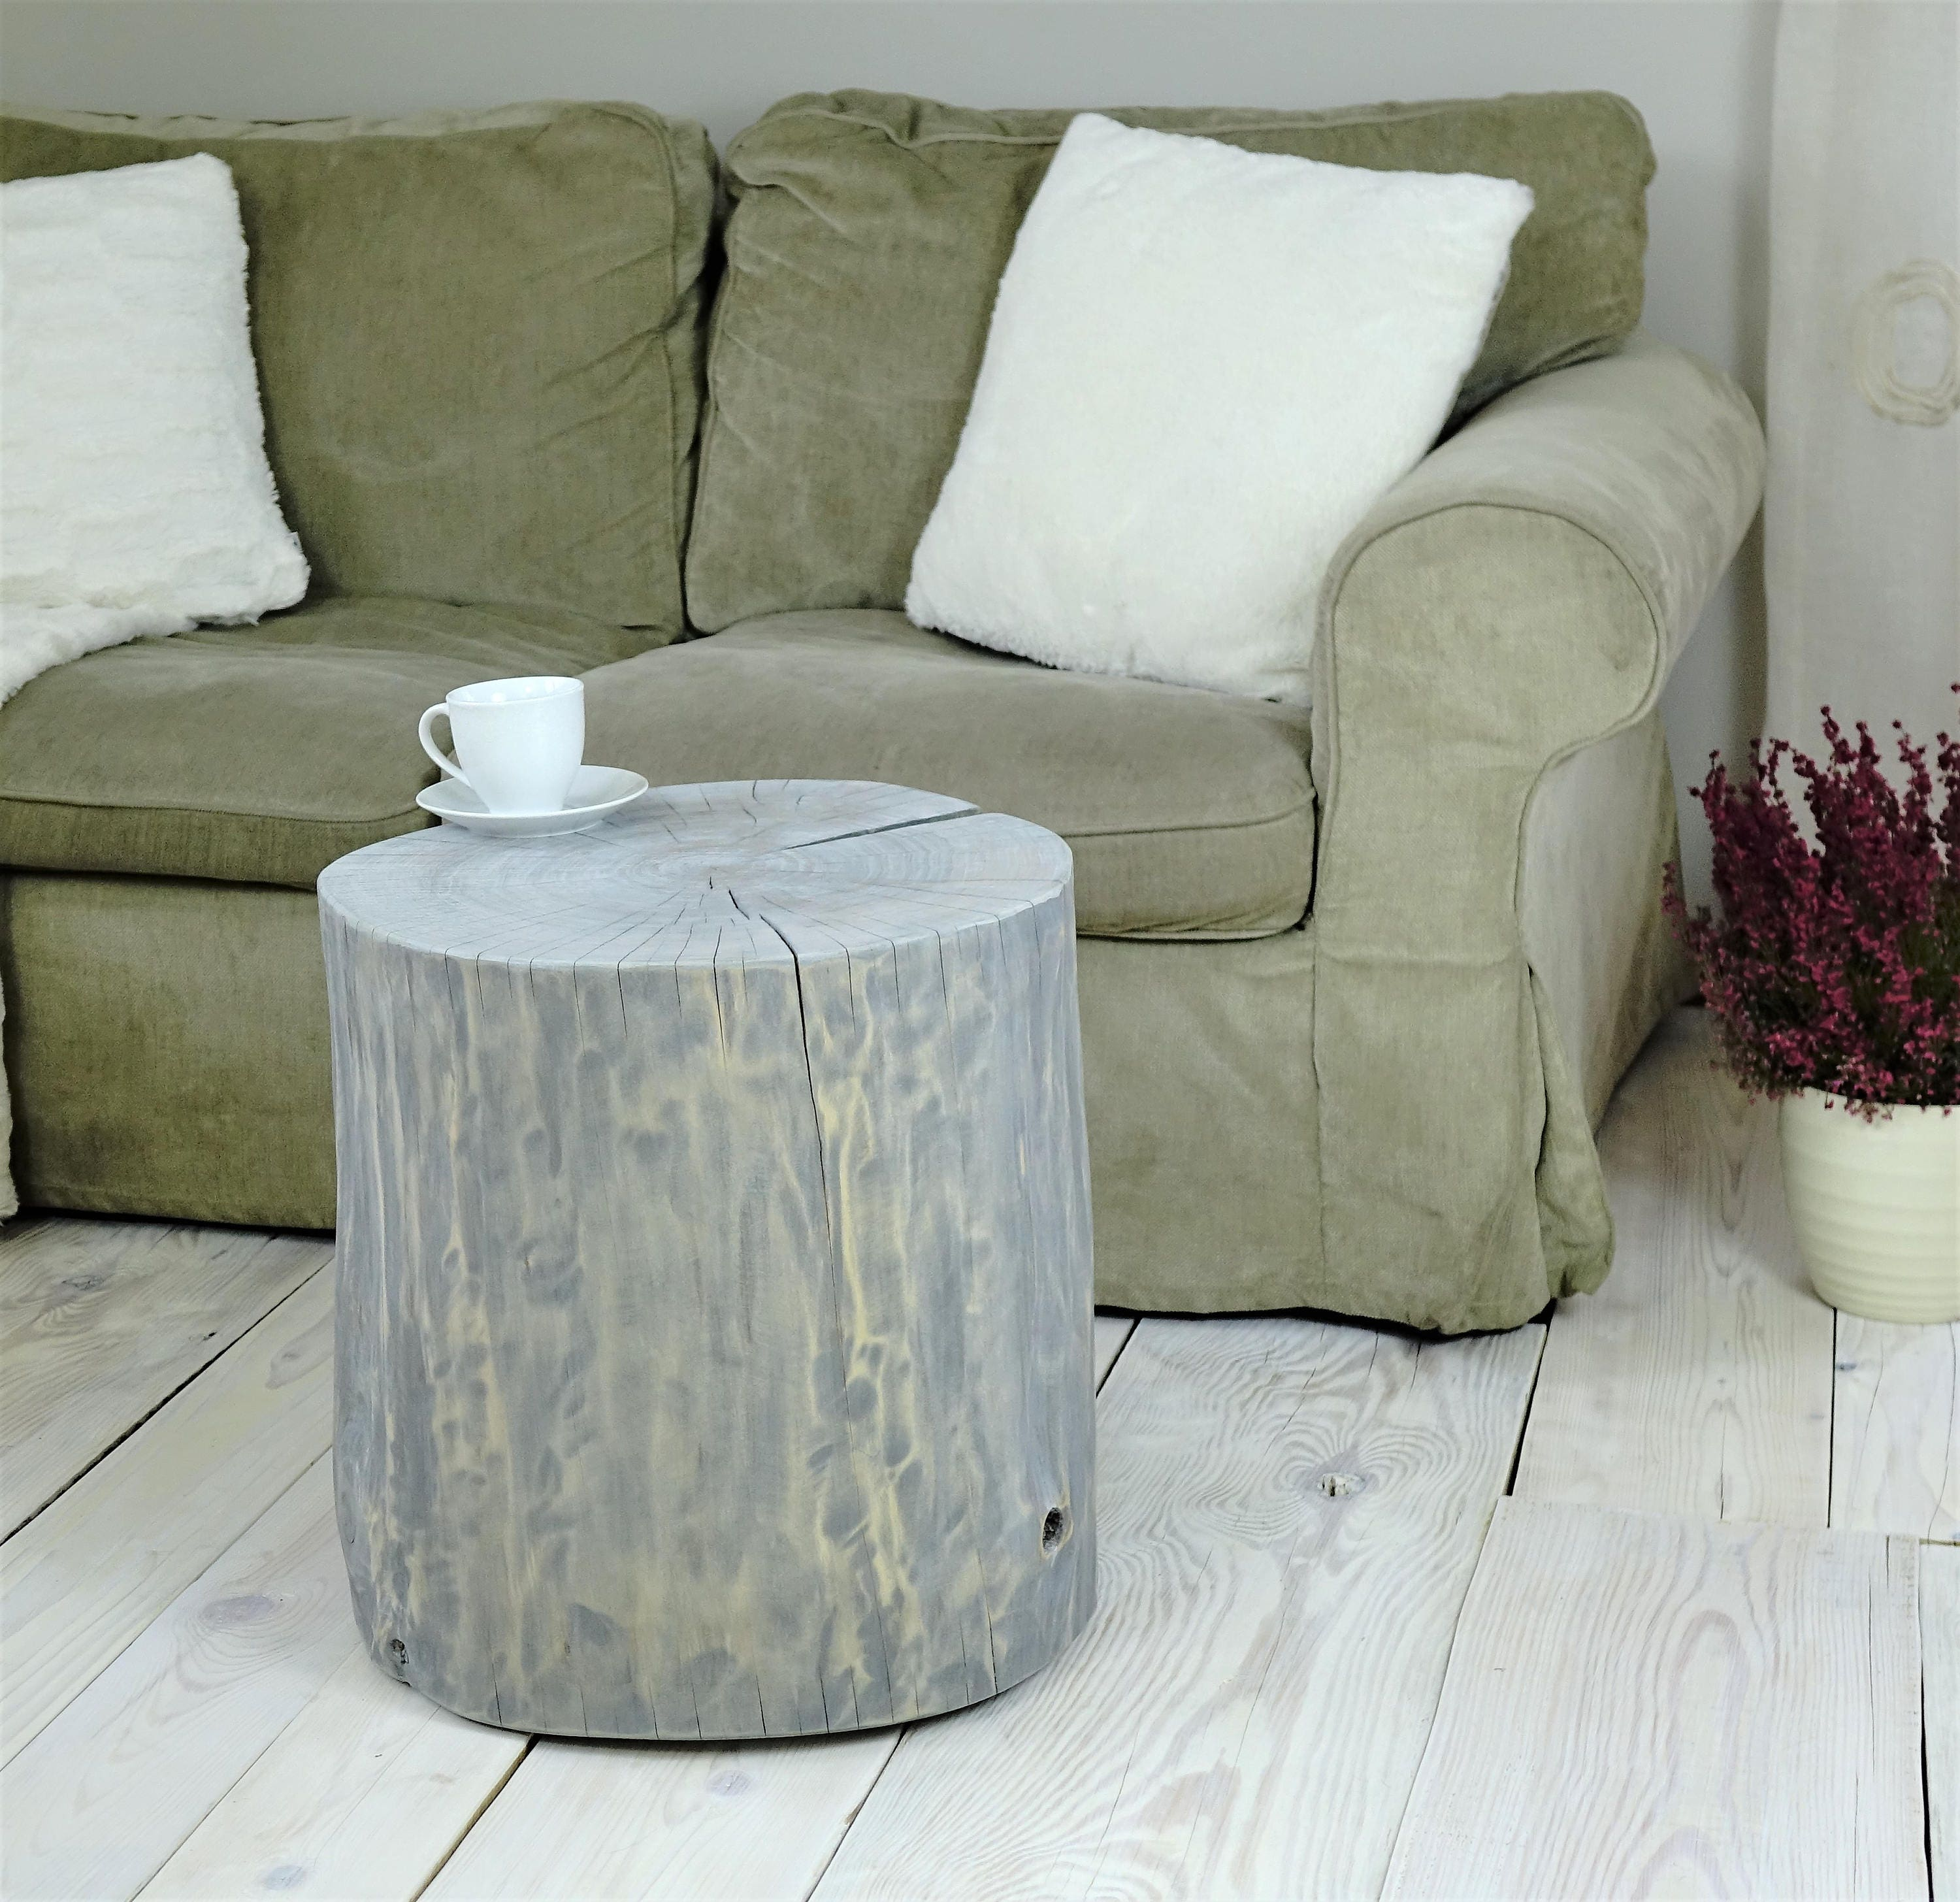 gray washed tree stump side table style stump table wooden stump table baumstamm tisch sgabello ceppo di legno